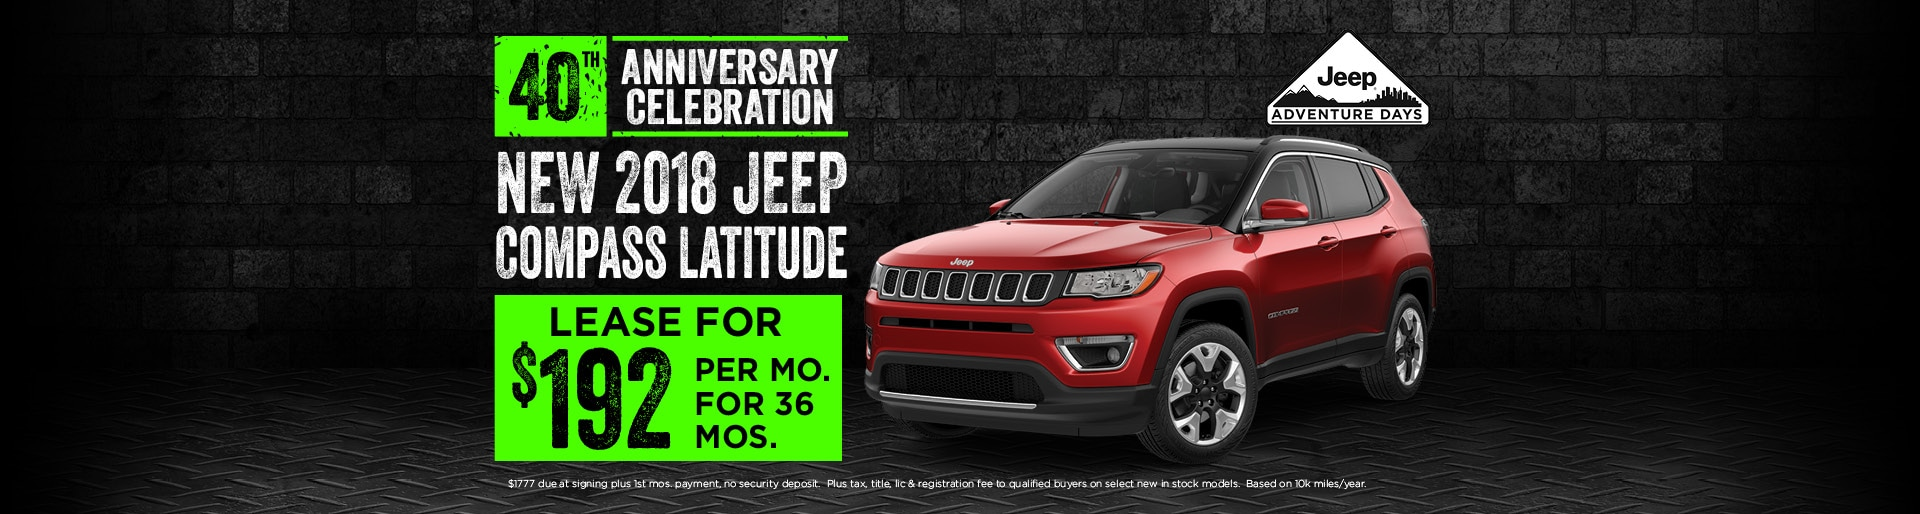 2018 Jeep Compass Lease deals